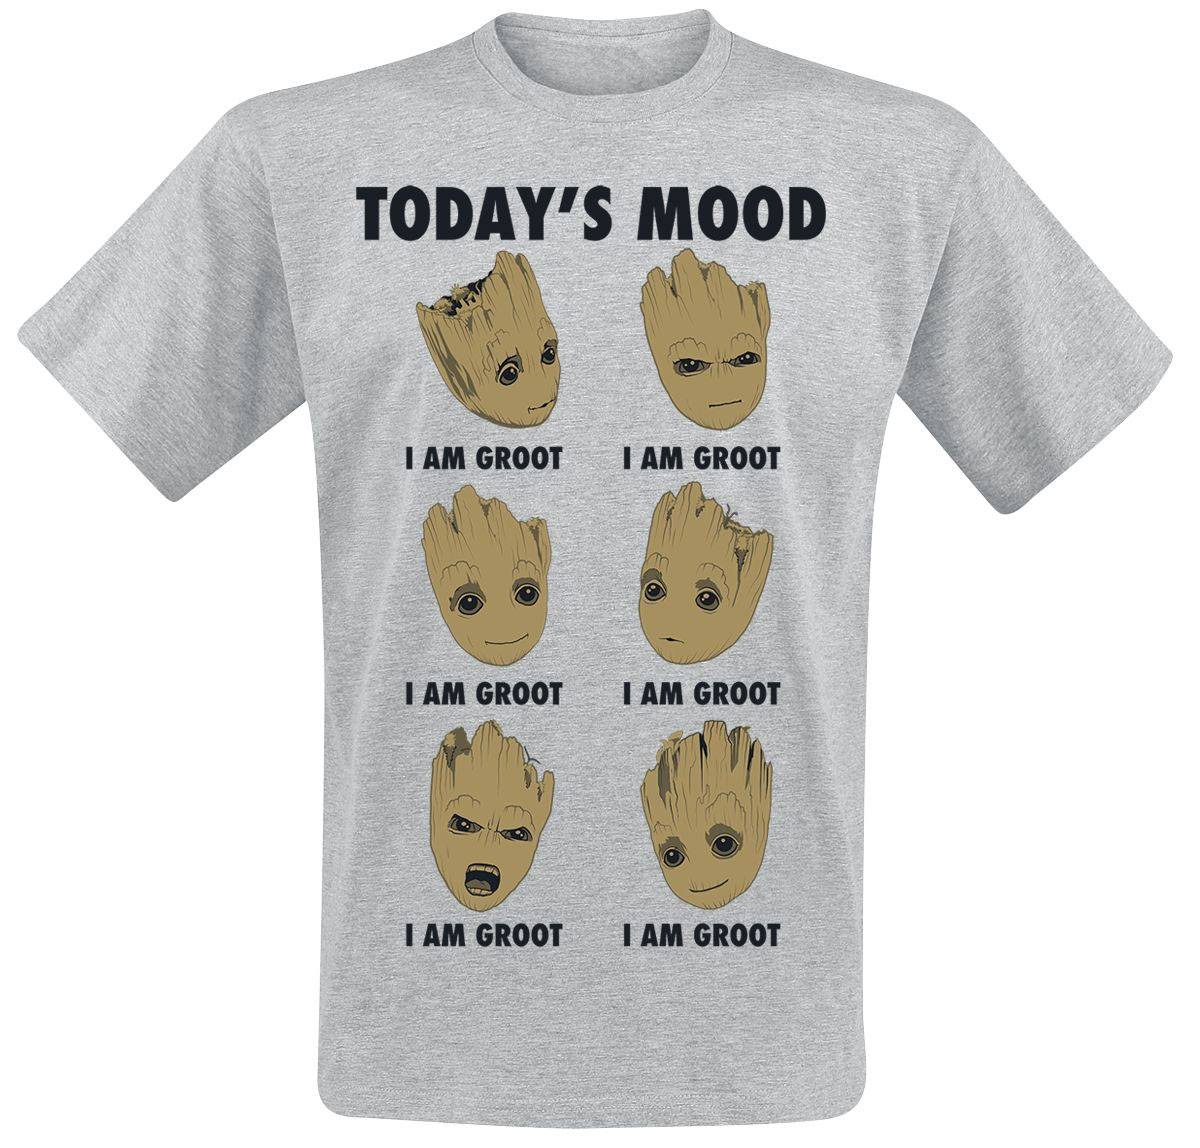 Guardians of the Galaxy Vol. 2 T-Shirt Groot Todays Mood Size XL